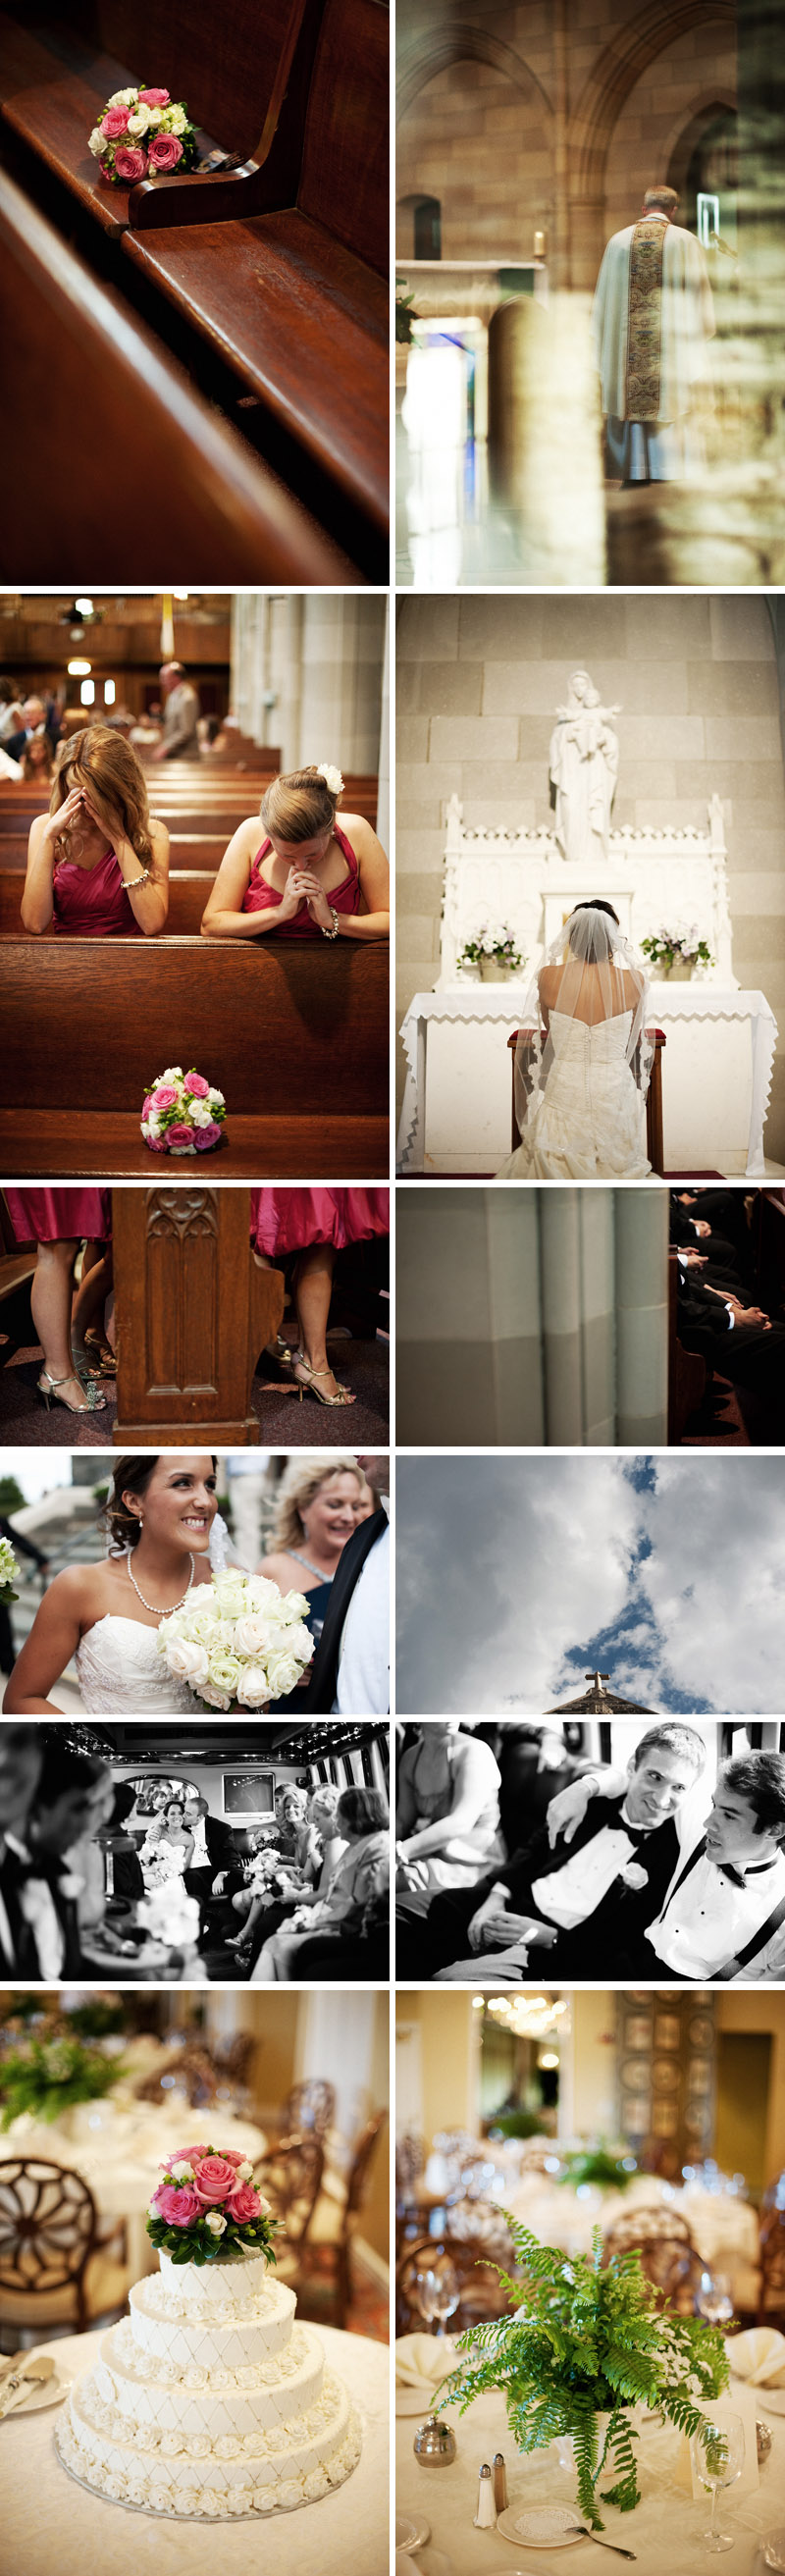 overbrook country club wedding in philadelphia photographed by ash imagery